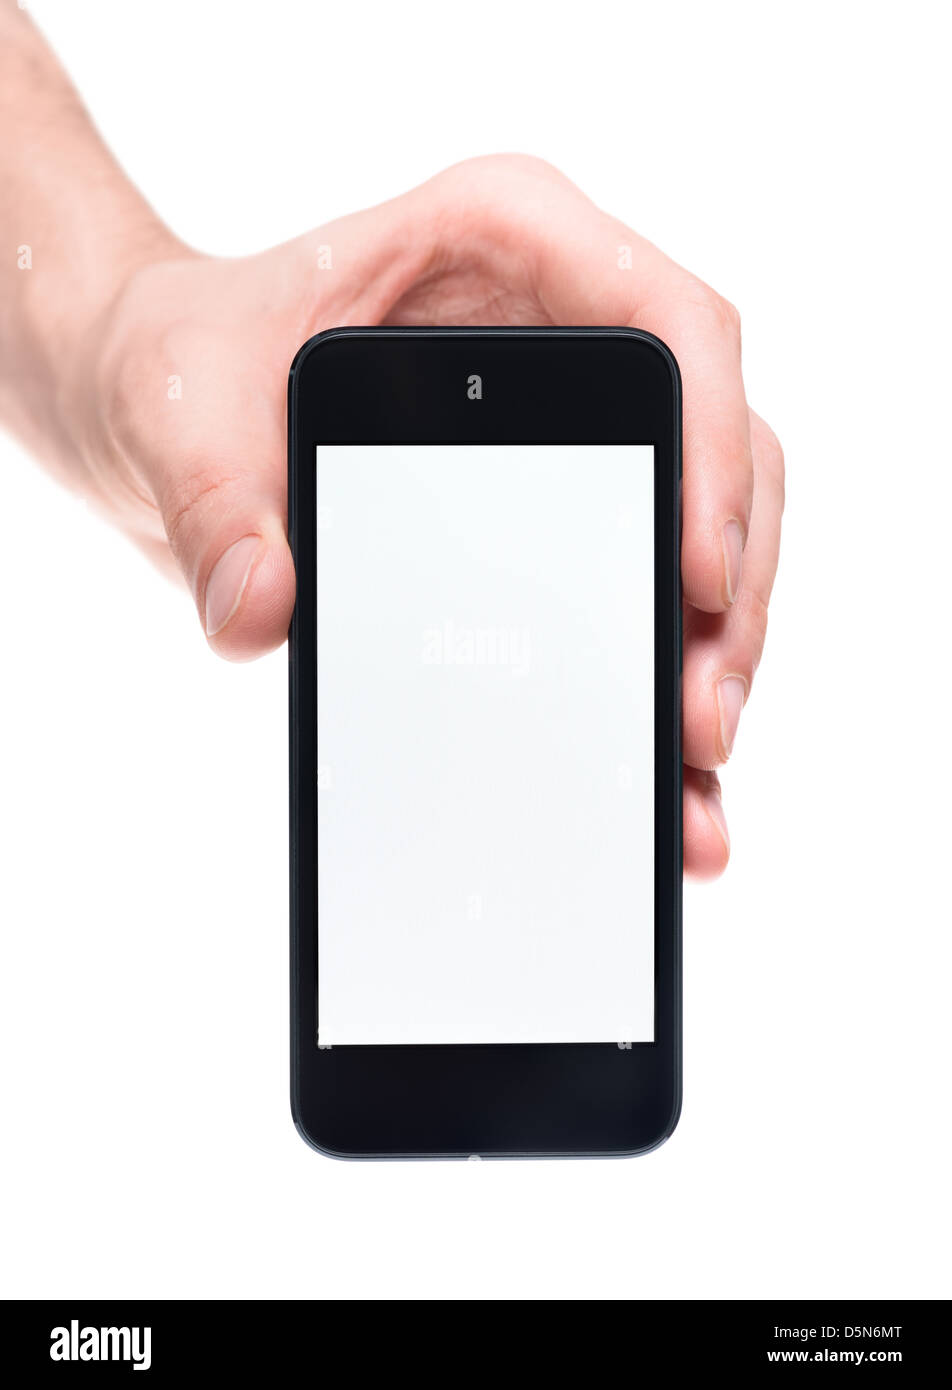 Men's hand holding and showing modern mobile smartphone with blank screen. Isolated on white background. - Stock Image